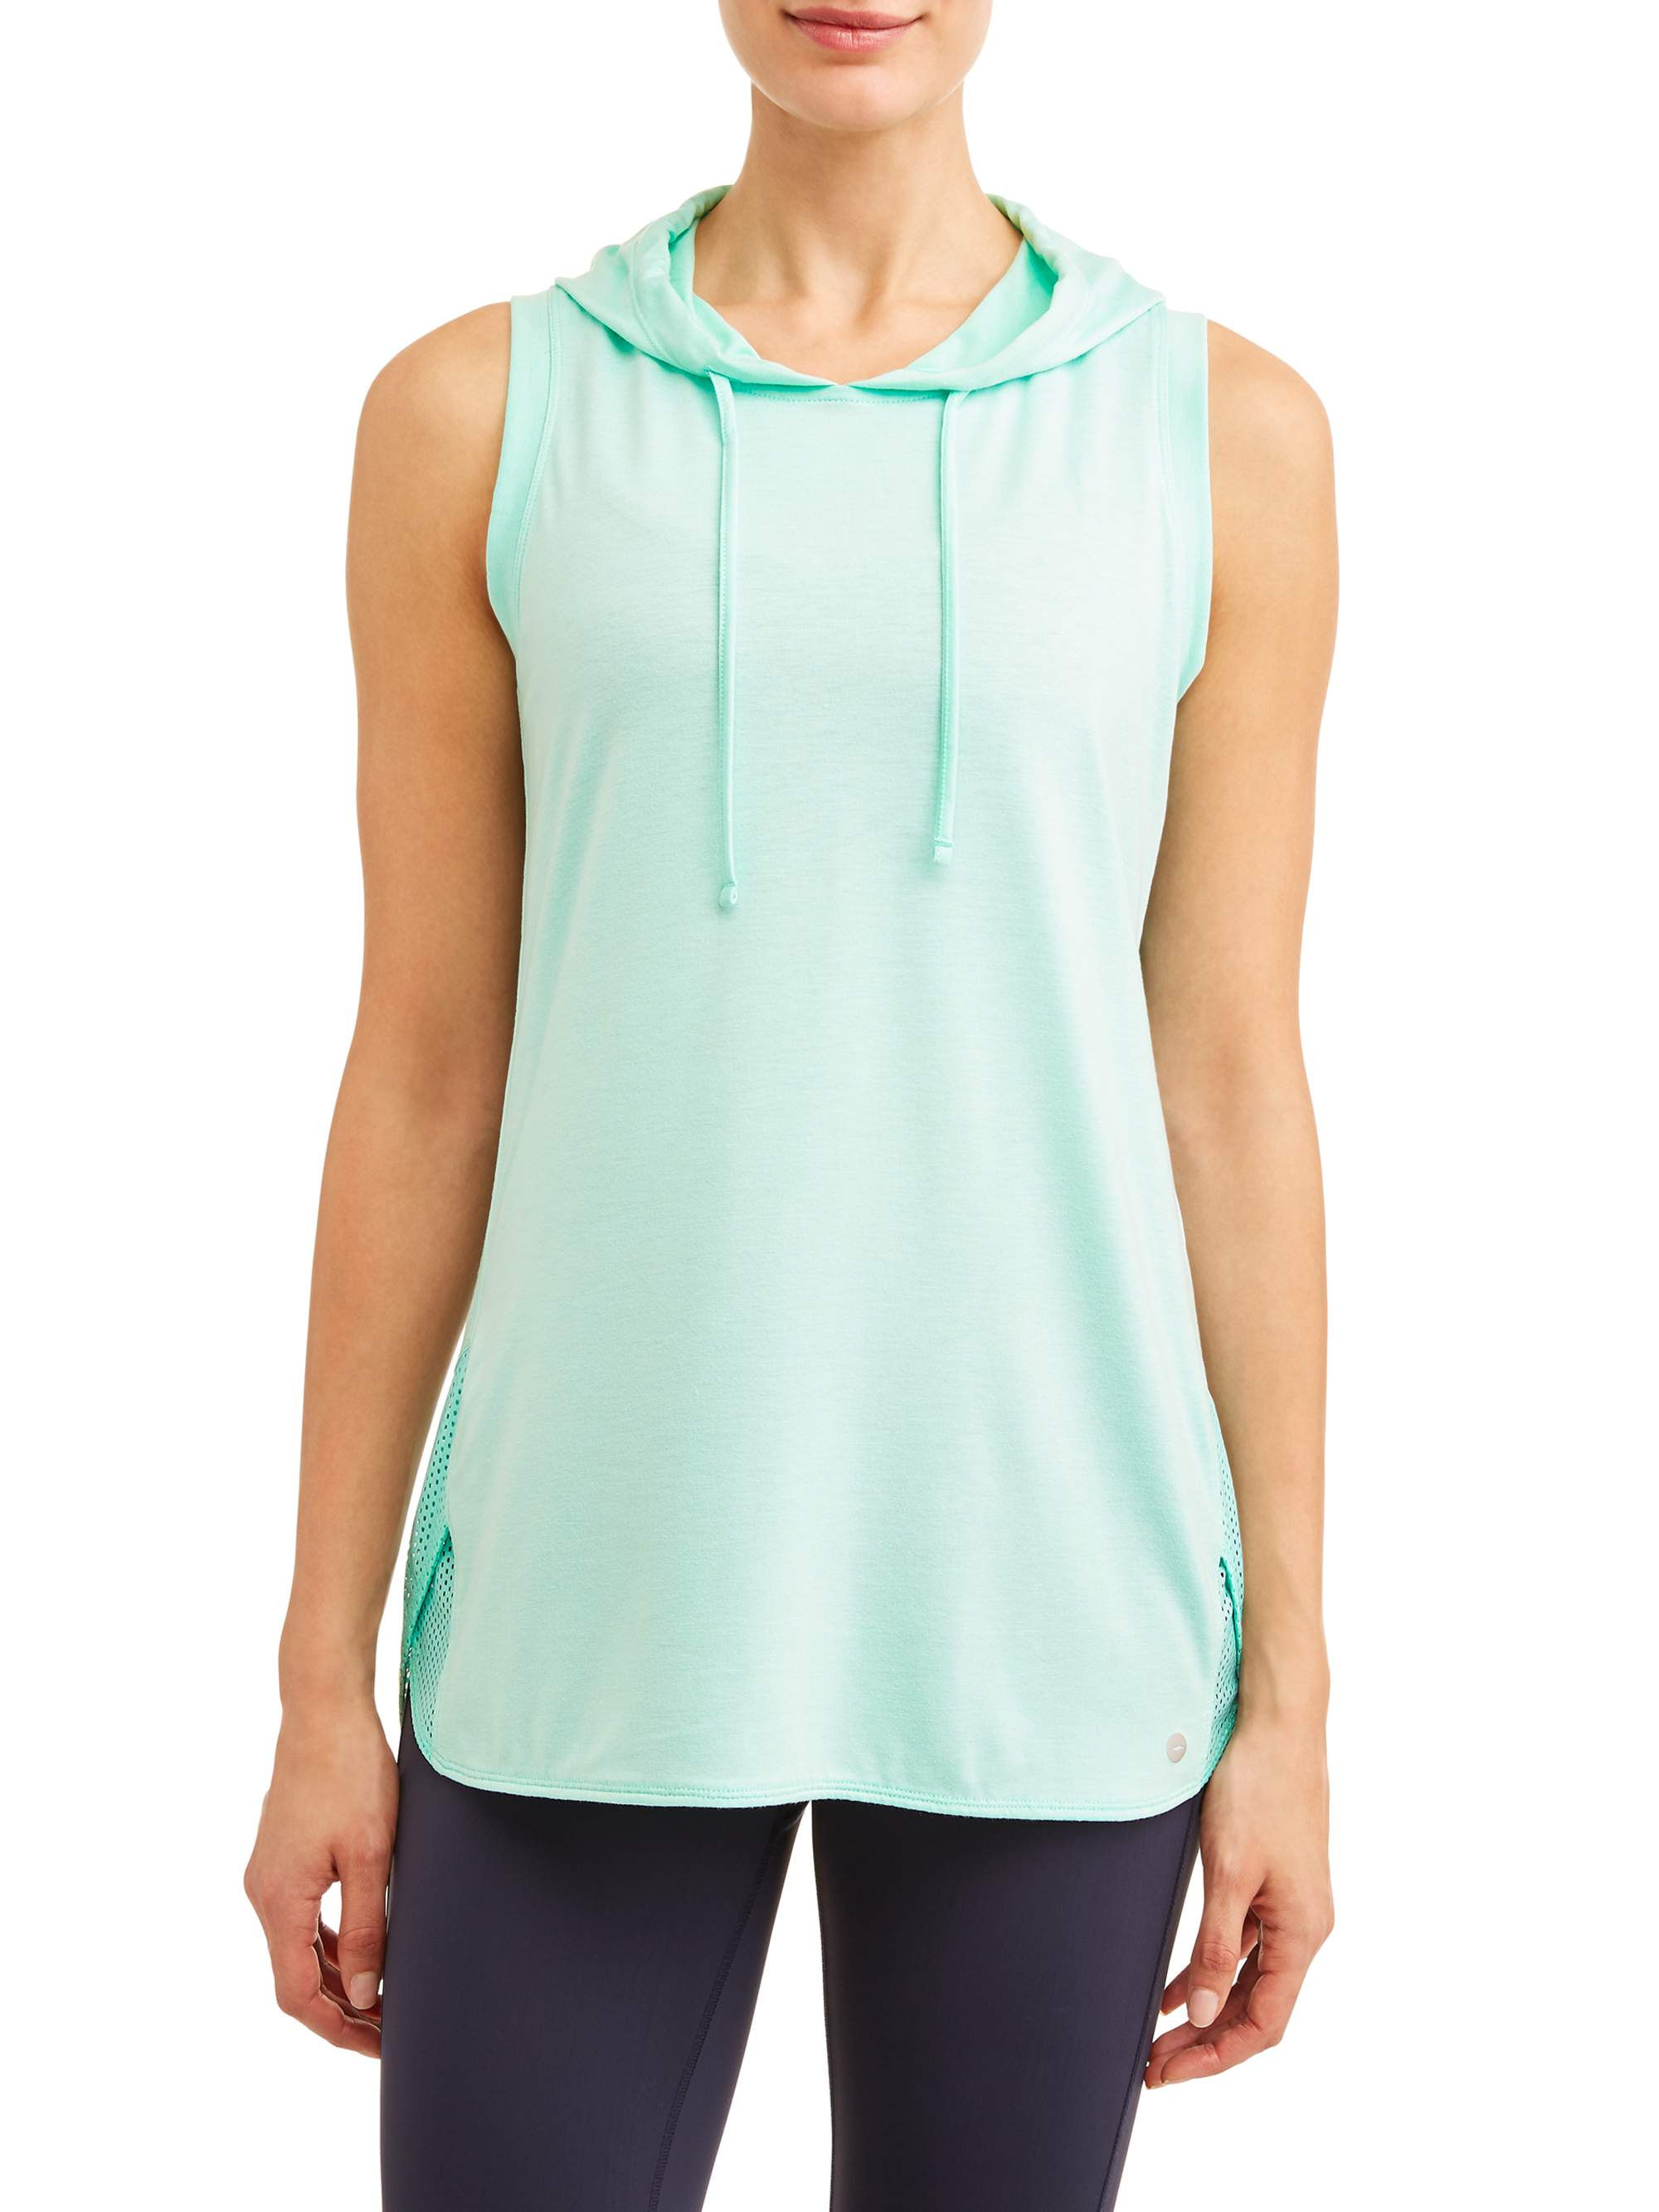 Women's Active Sleeveless Hoodie - Mesh Racerback Pullover Top